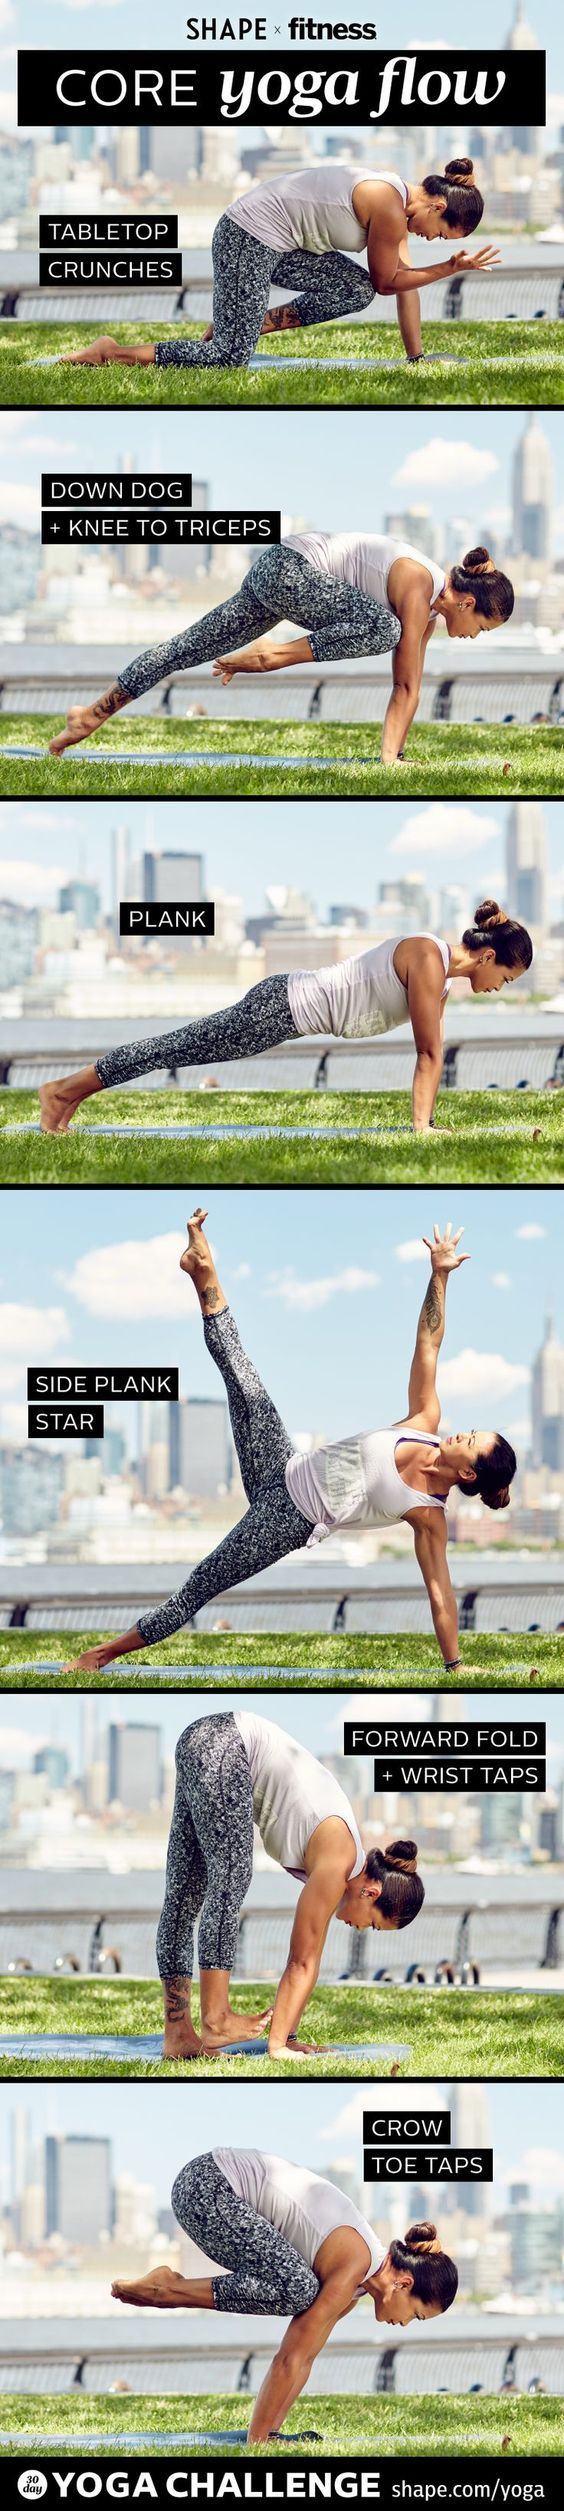 DownDog Yoga for Fun & Fitness: Core Yoga Flow. From the Downdog Diary Yoga Blog...